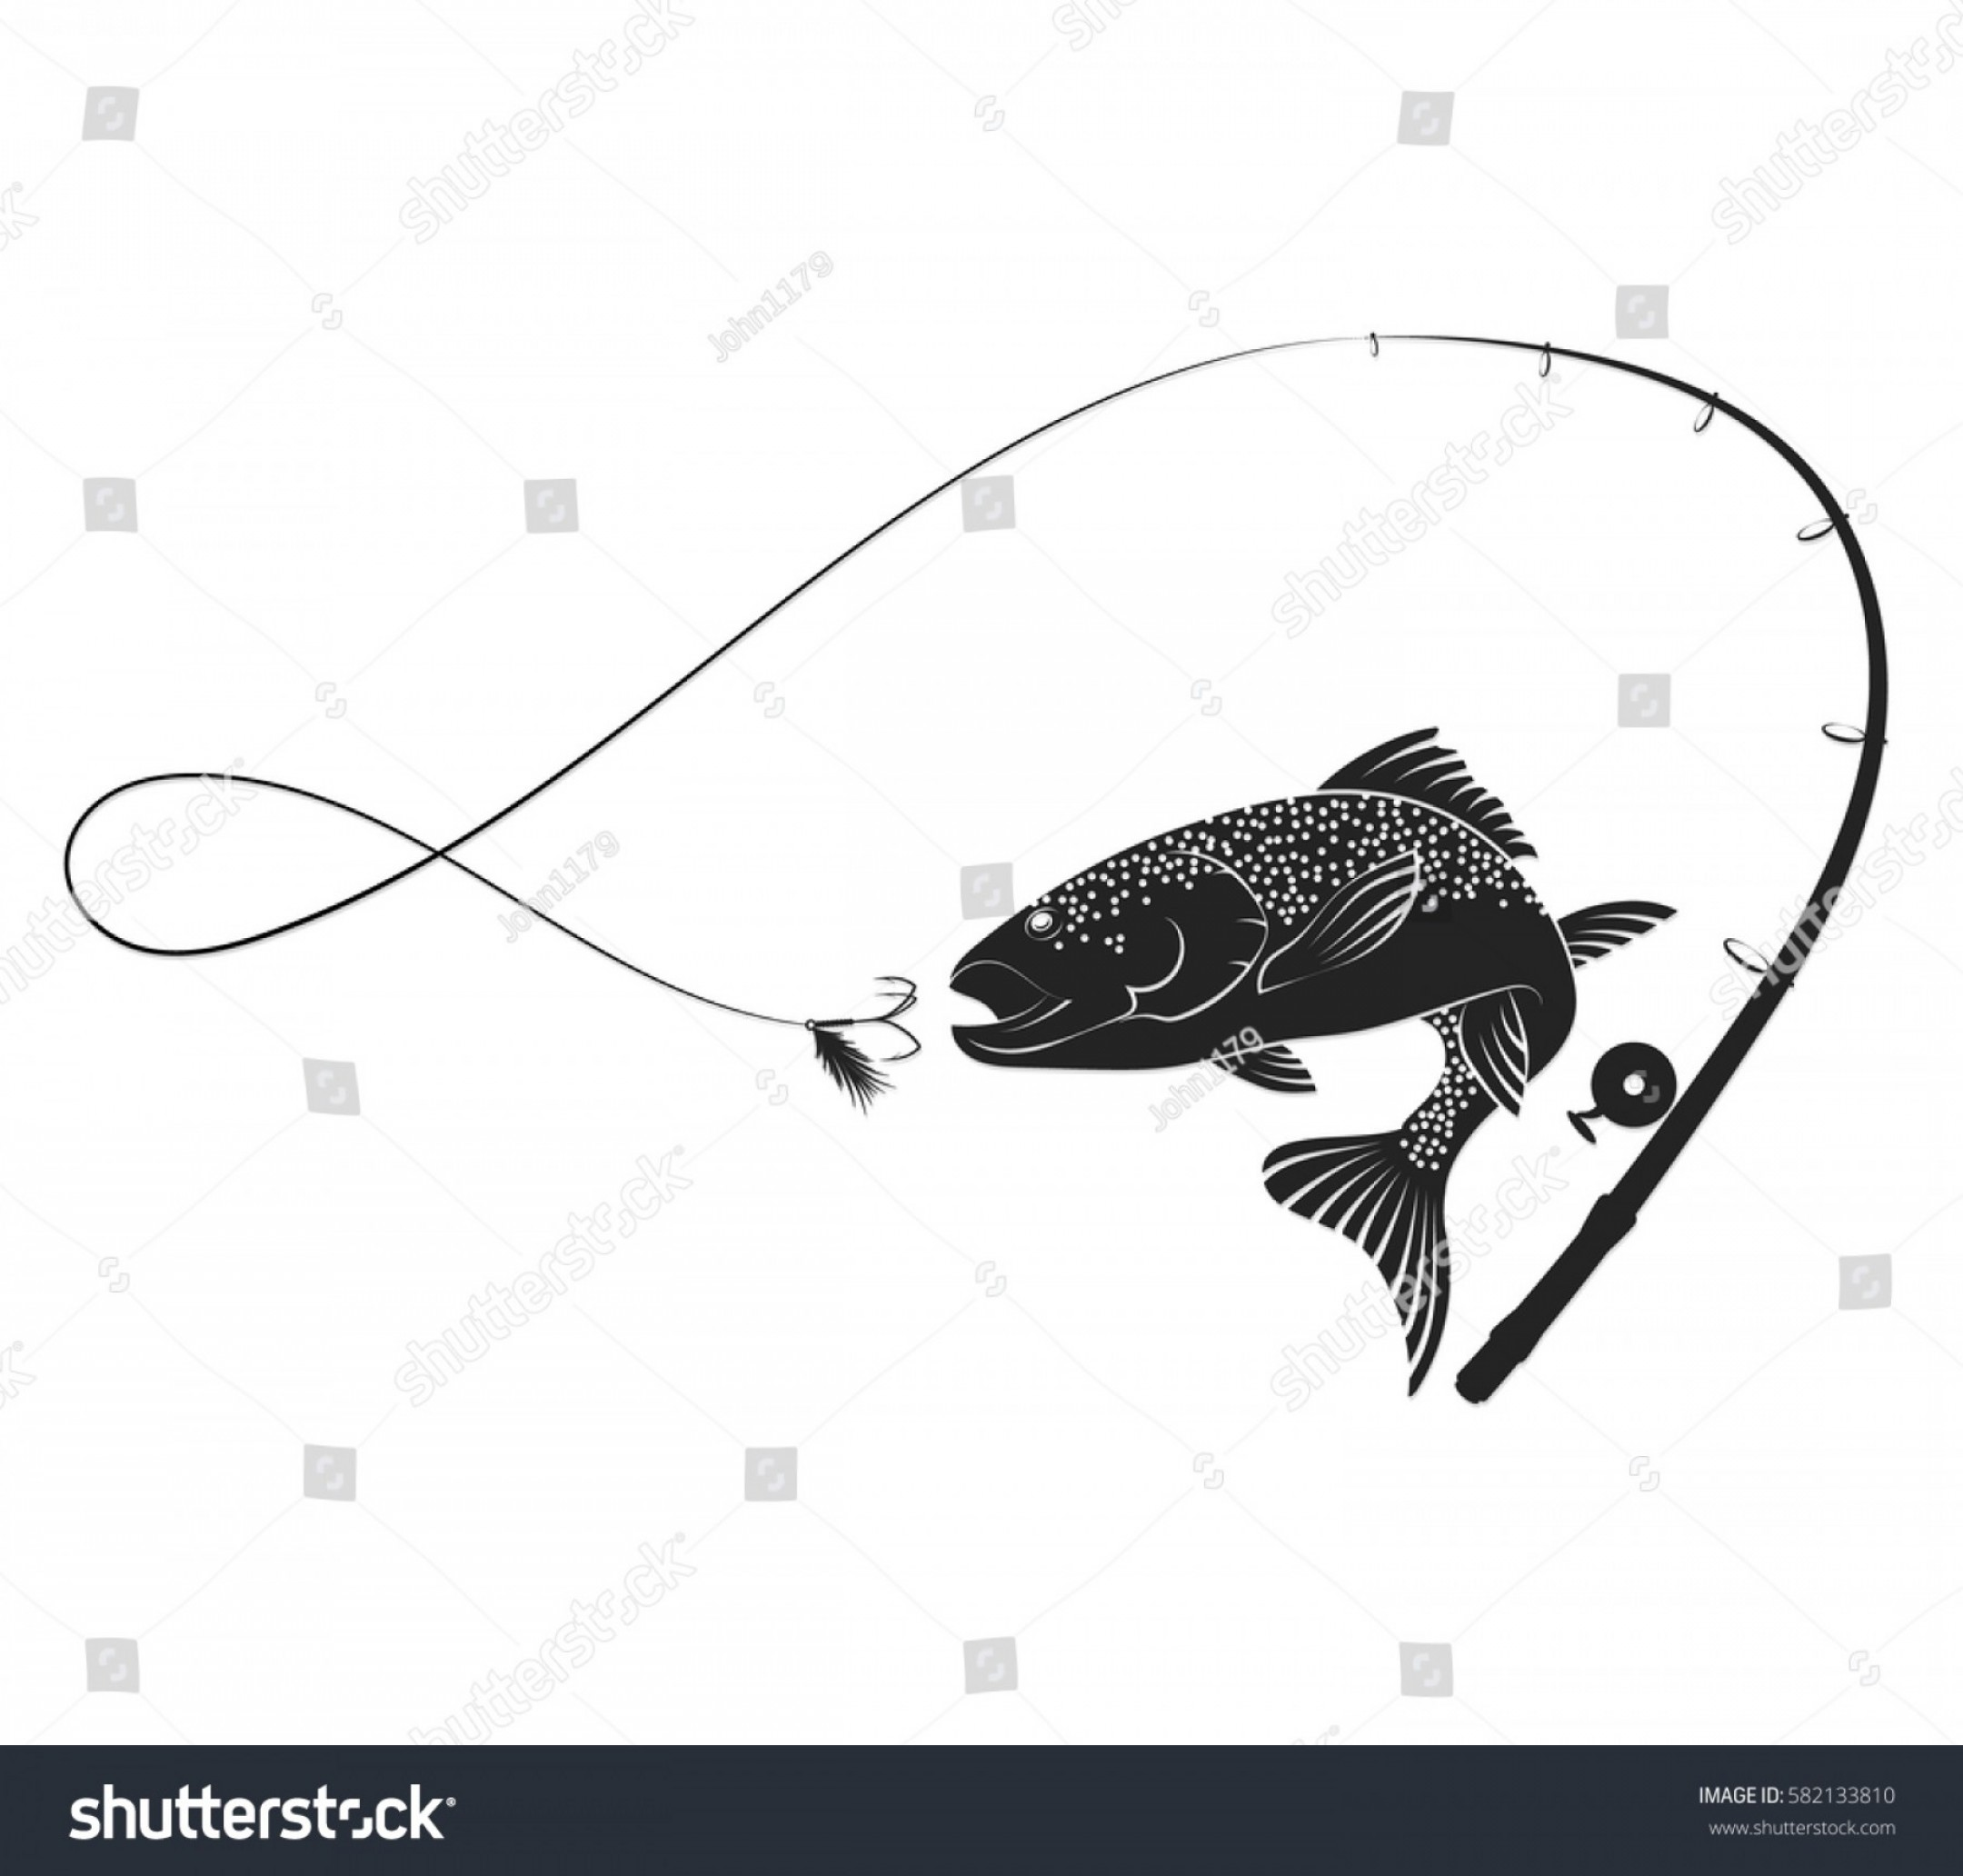 Detailed Vector Art Fly Fisherman: Fish Jumping Bait Fishing Rod Silhouette